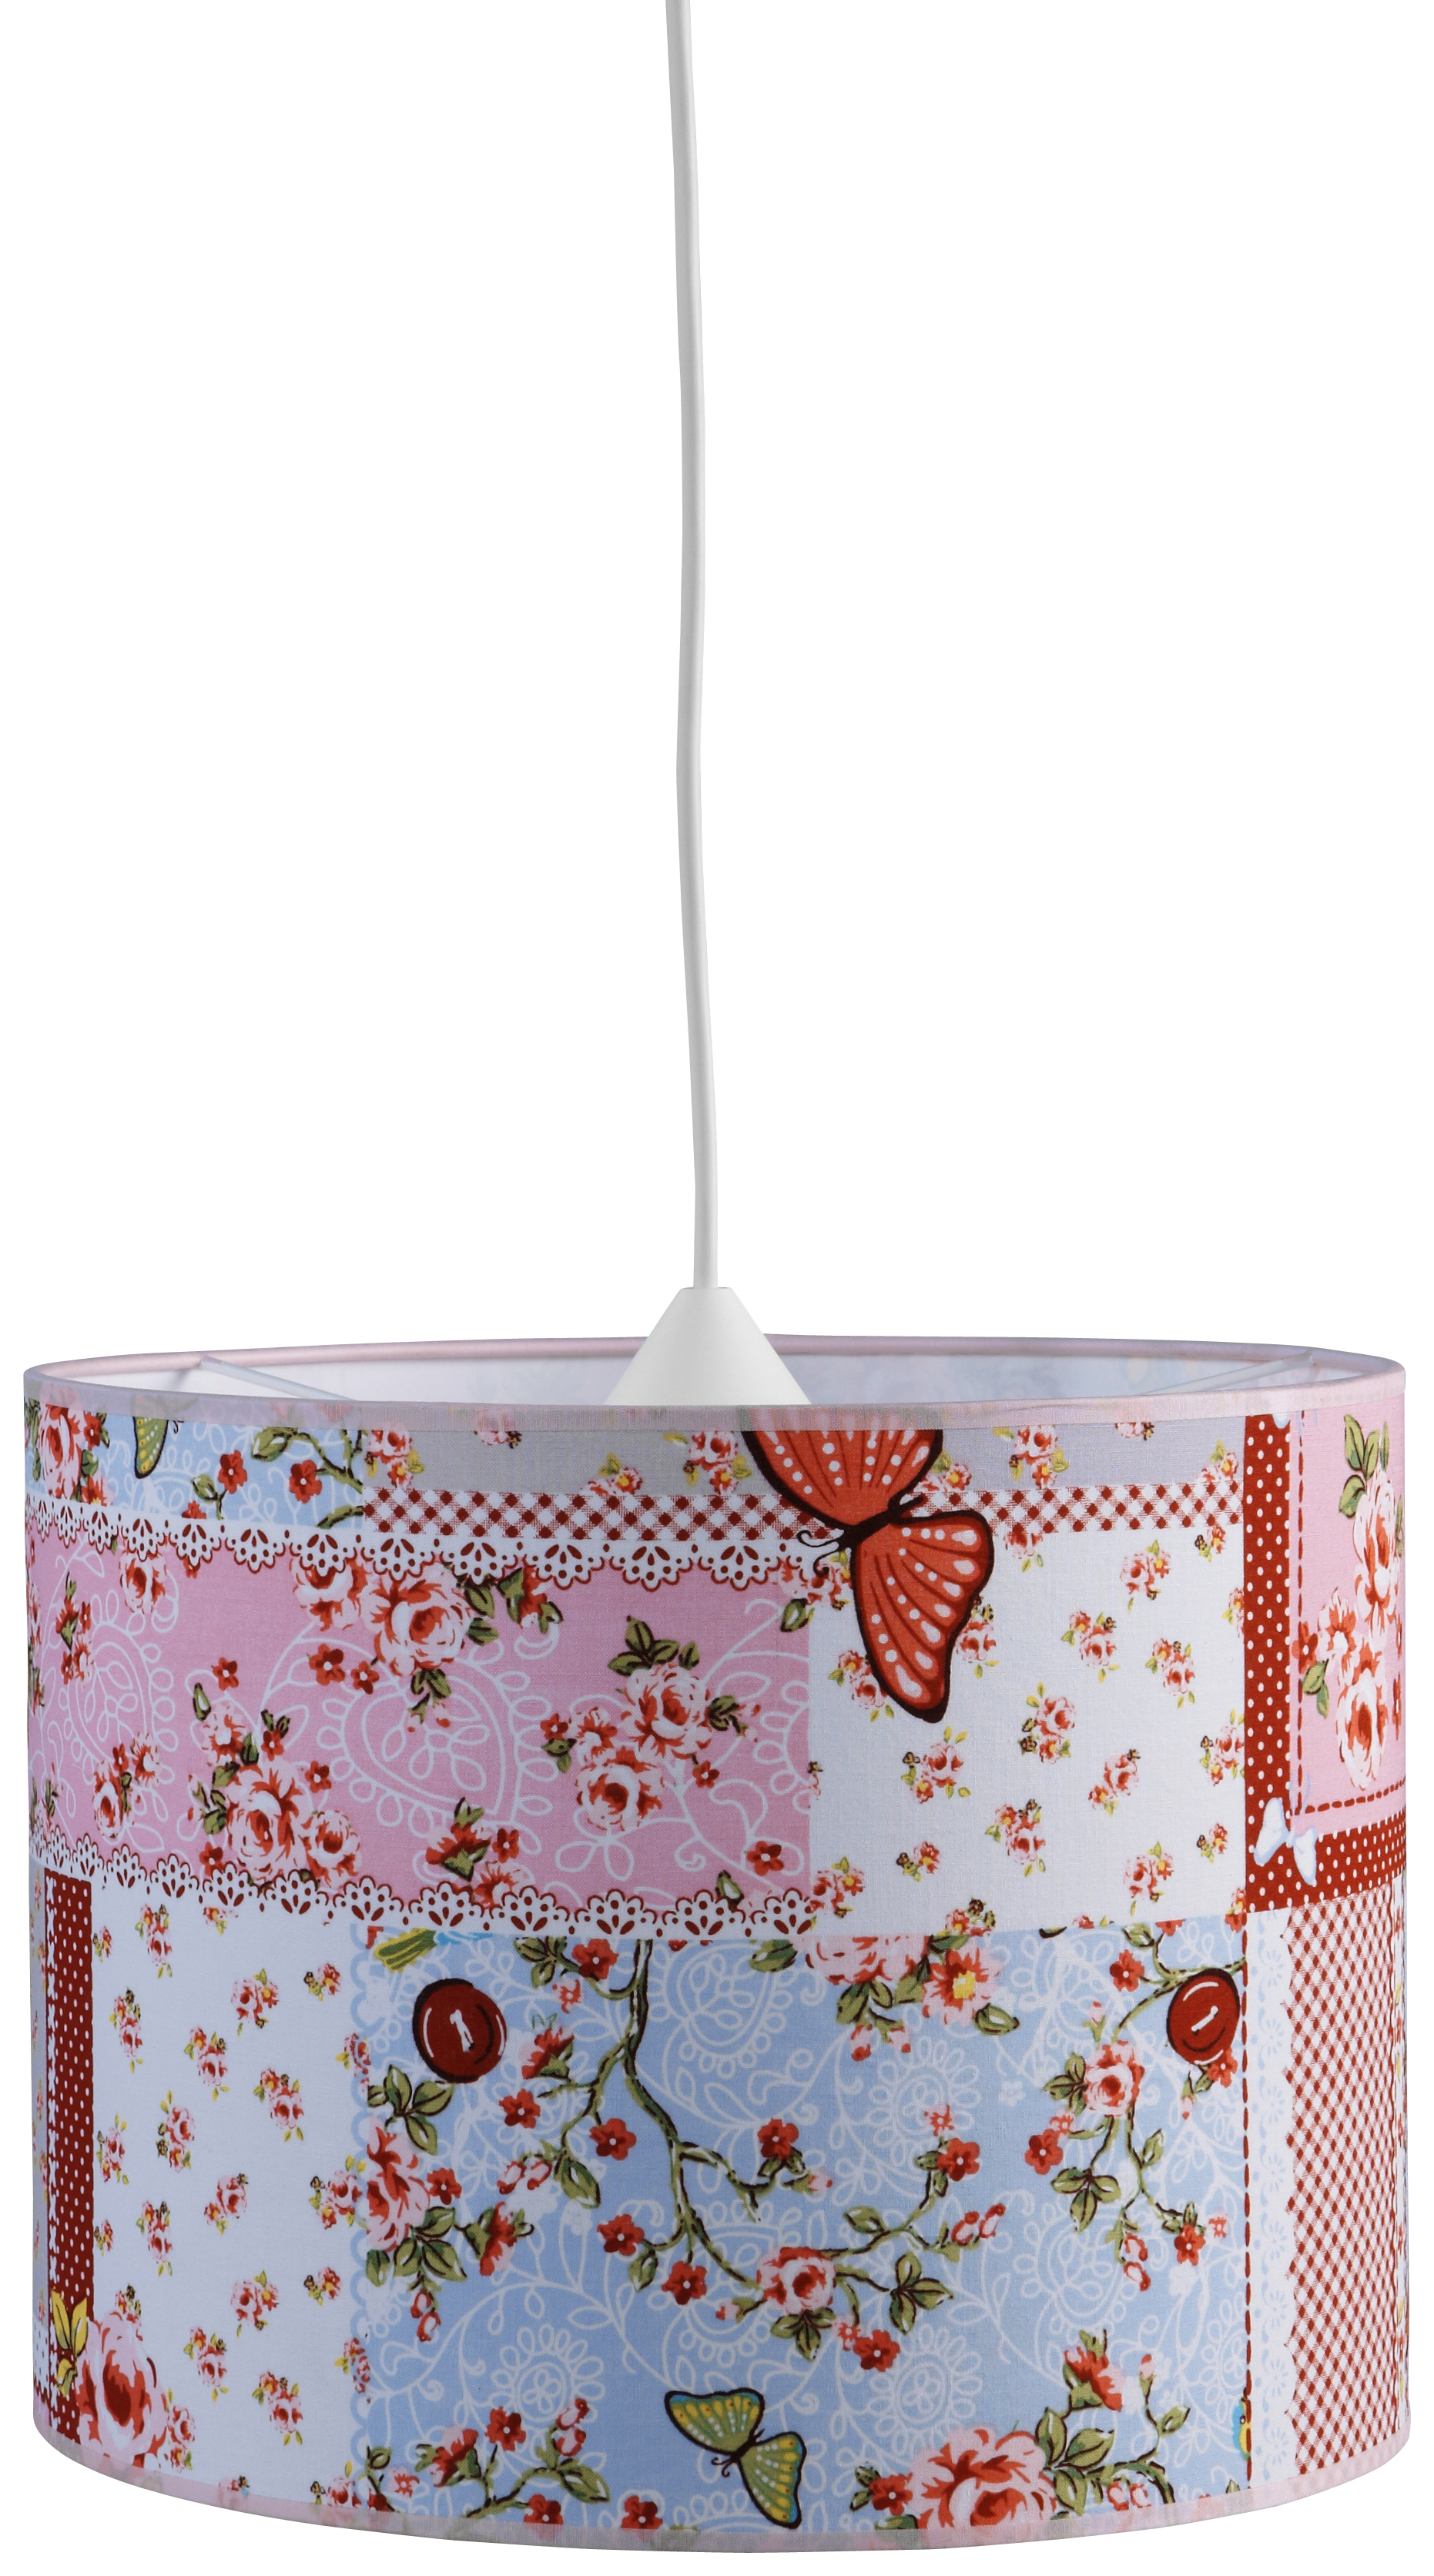 Kinderlamp ABC Girl van Anel